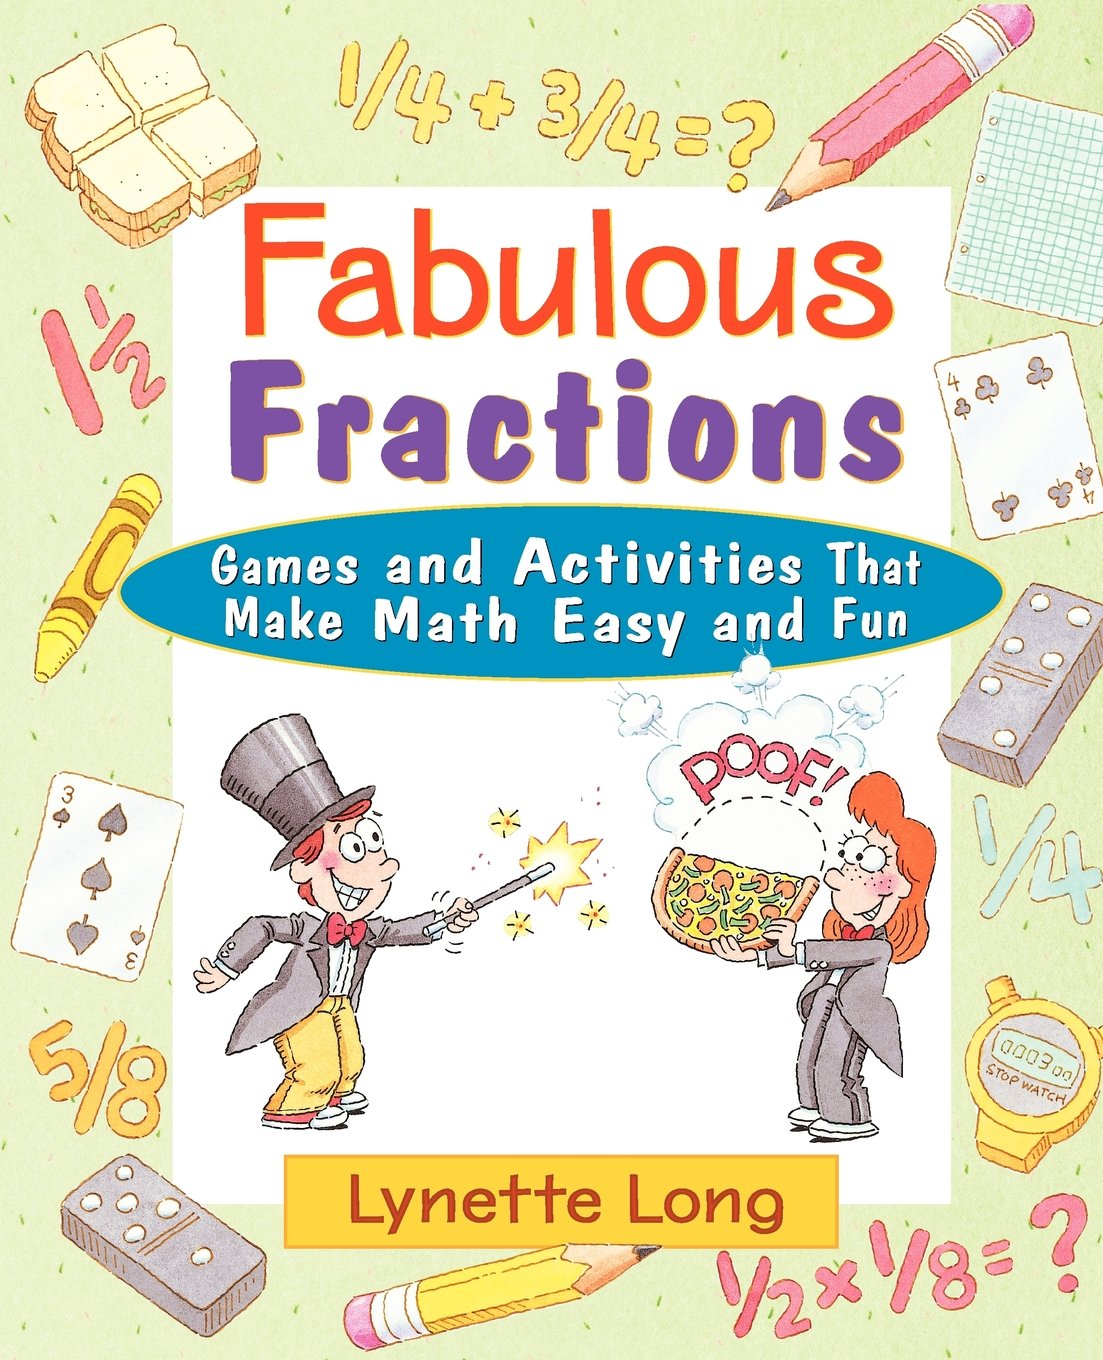 Workbooks buy kumon workbooks : Amazon.com: Fractions - Math: Books